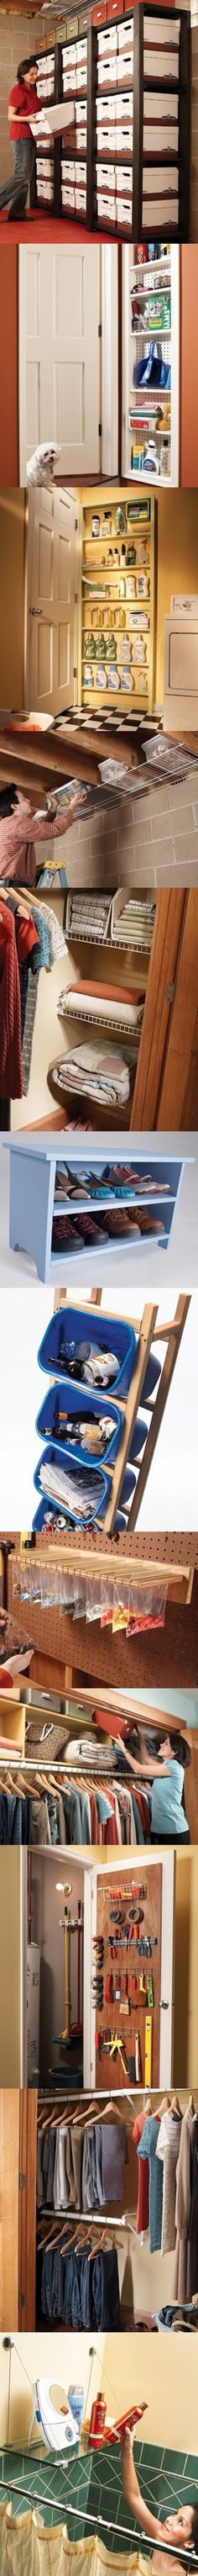 12 Simple Storage Solutions-I want the recycling center